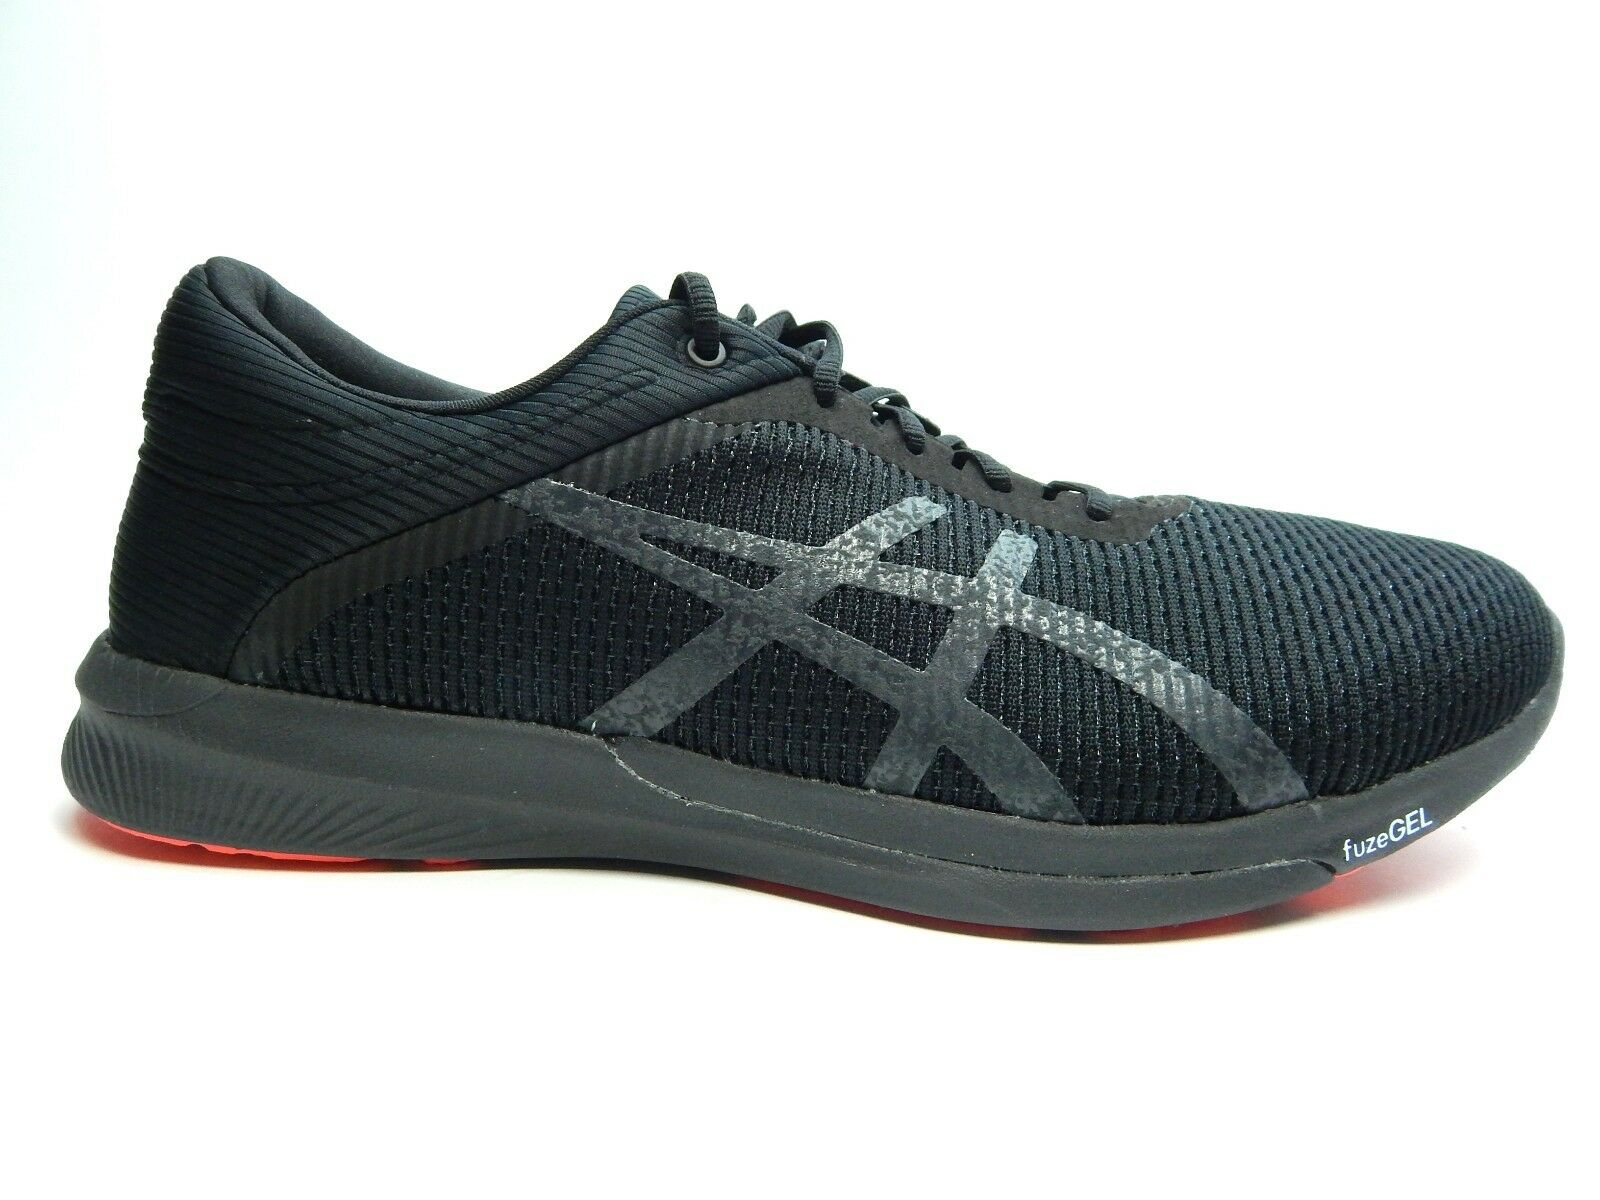 Asics Fuzex Rush DARK CM T7K2N 9095 BLACK DARK Rush GREY flash MEN SHOES SIZE 9.0 TO 11 0b8e1a